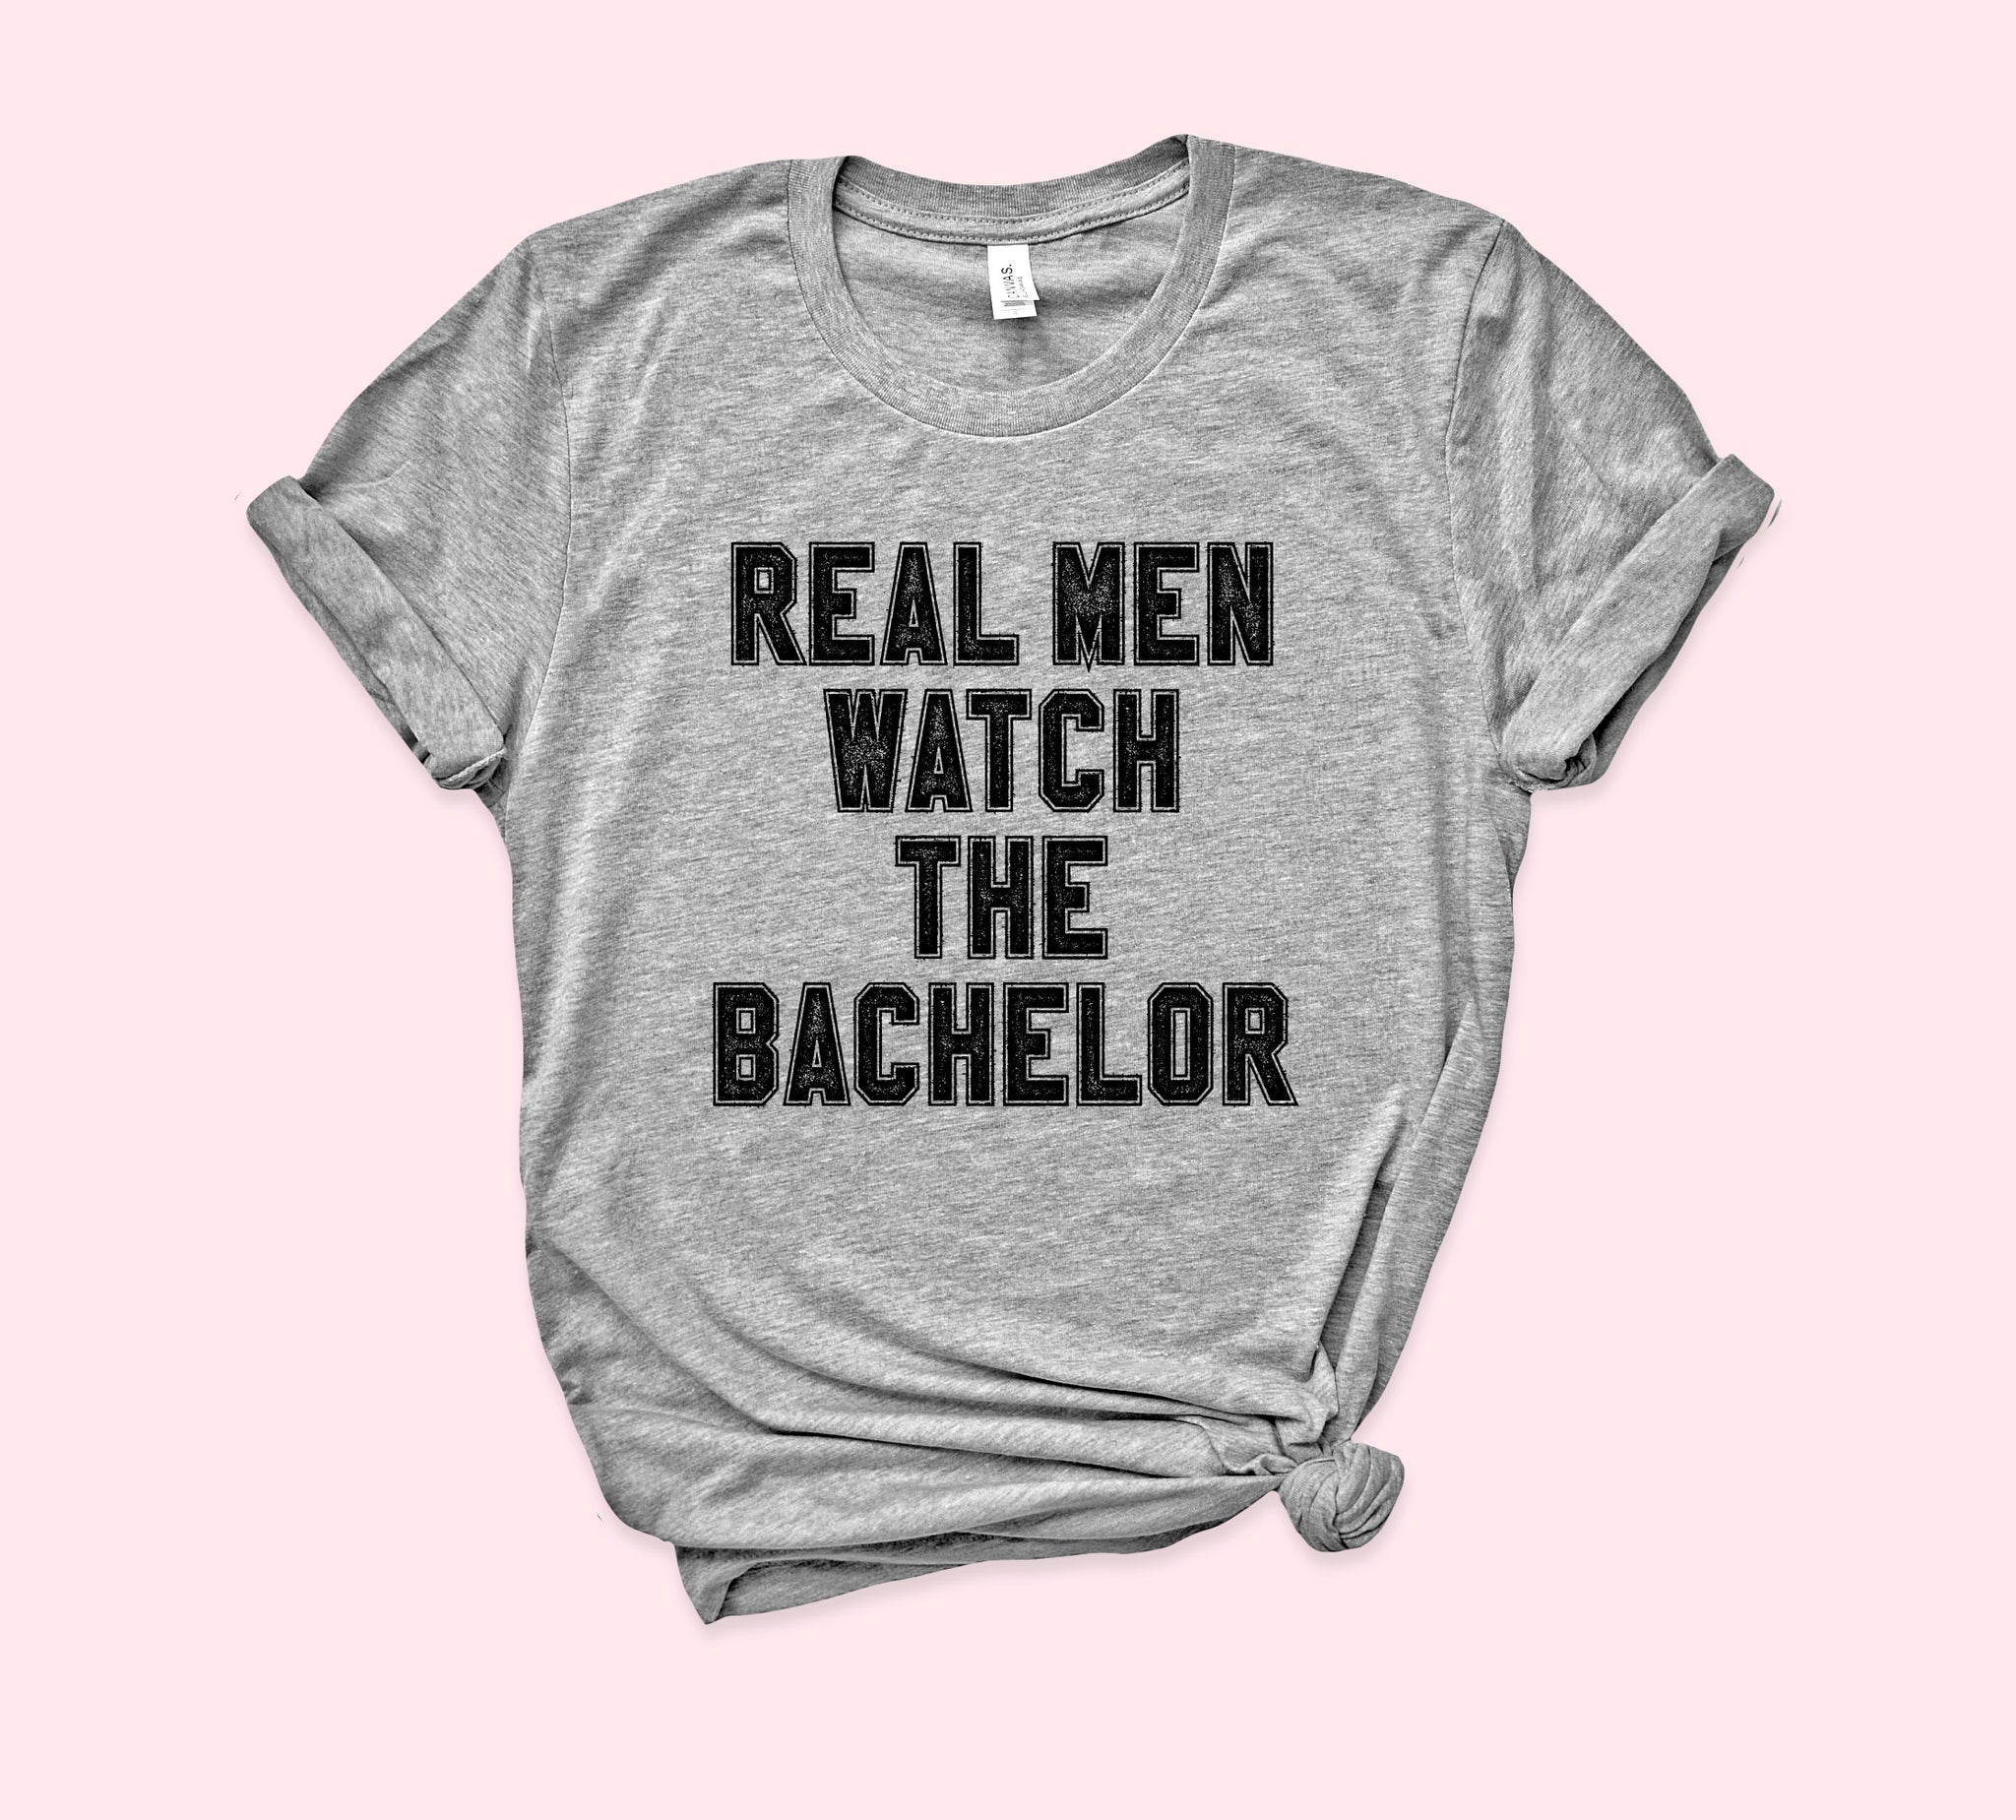 Real Men Watch The Bachelor Shirt